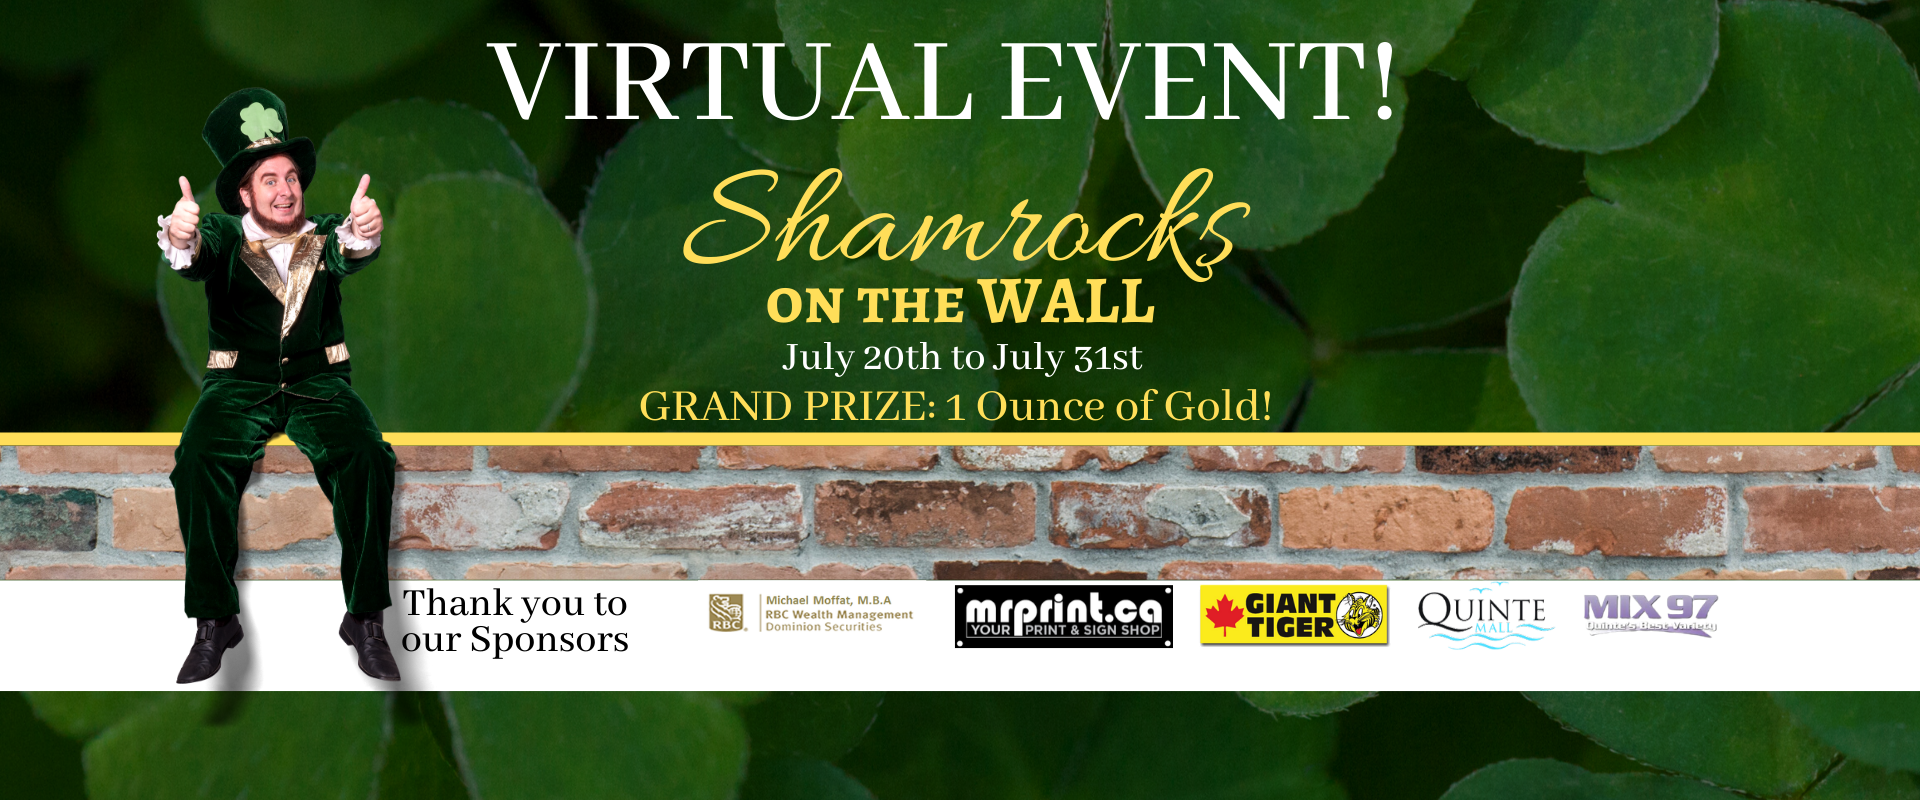 Test your luck with a chance to WIN one ounce of Gold!